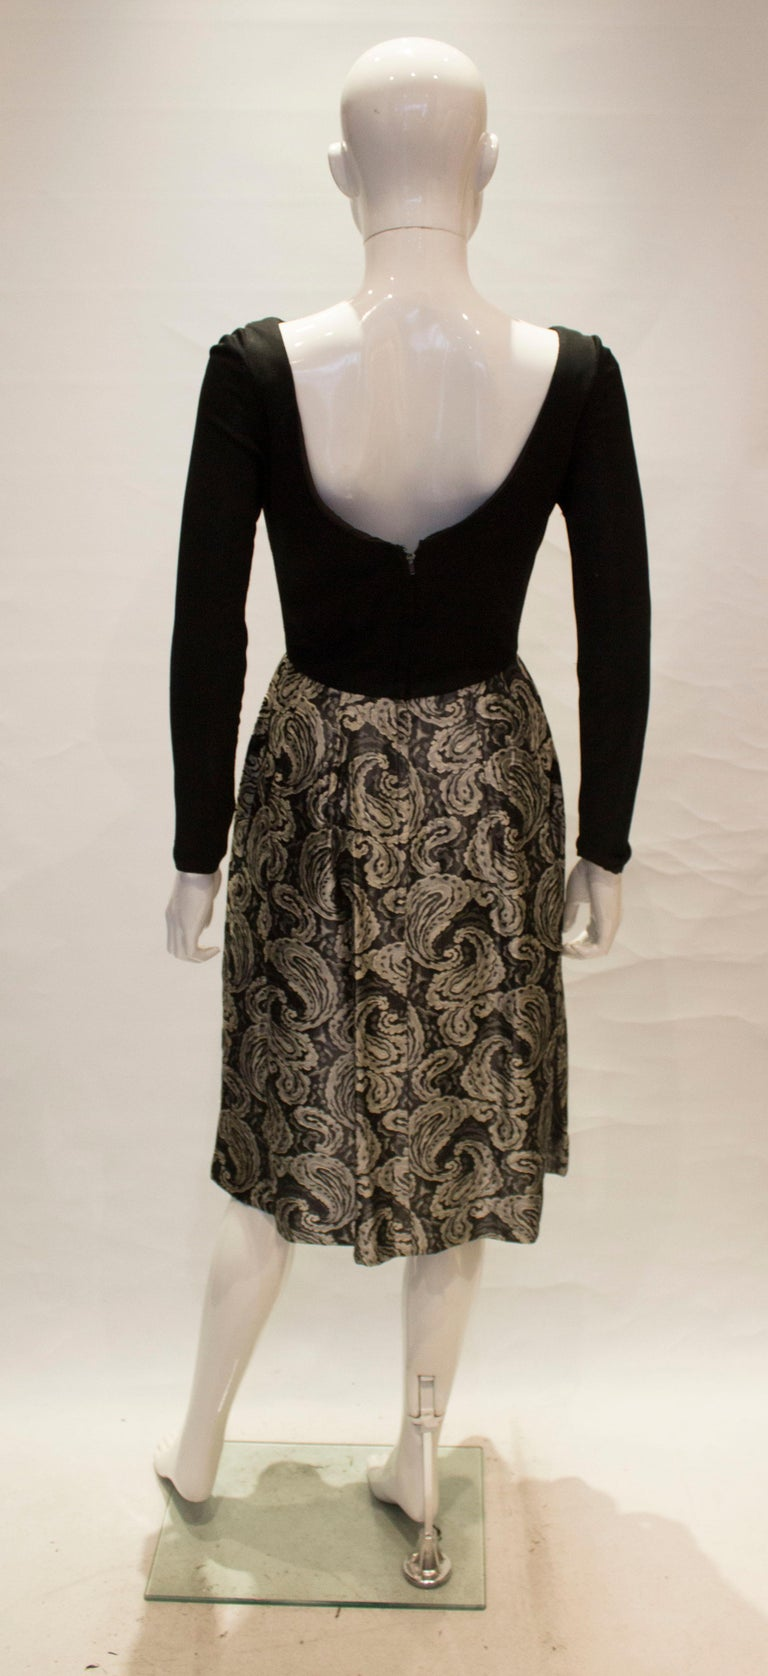 A vintage 1950s silver and black brocade party low back paisley dress small 2